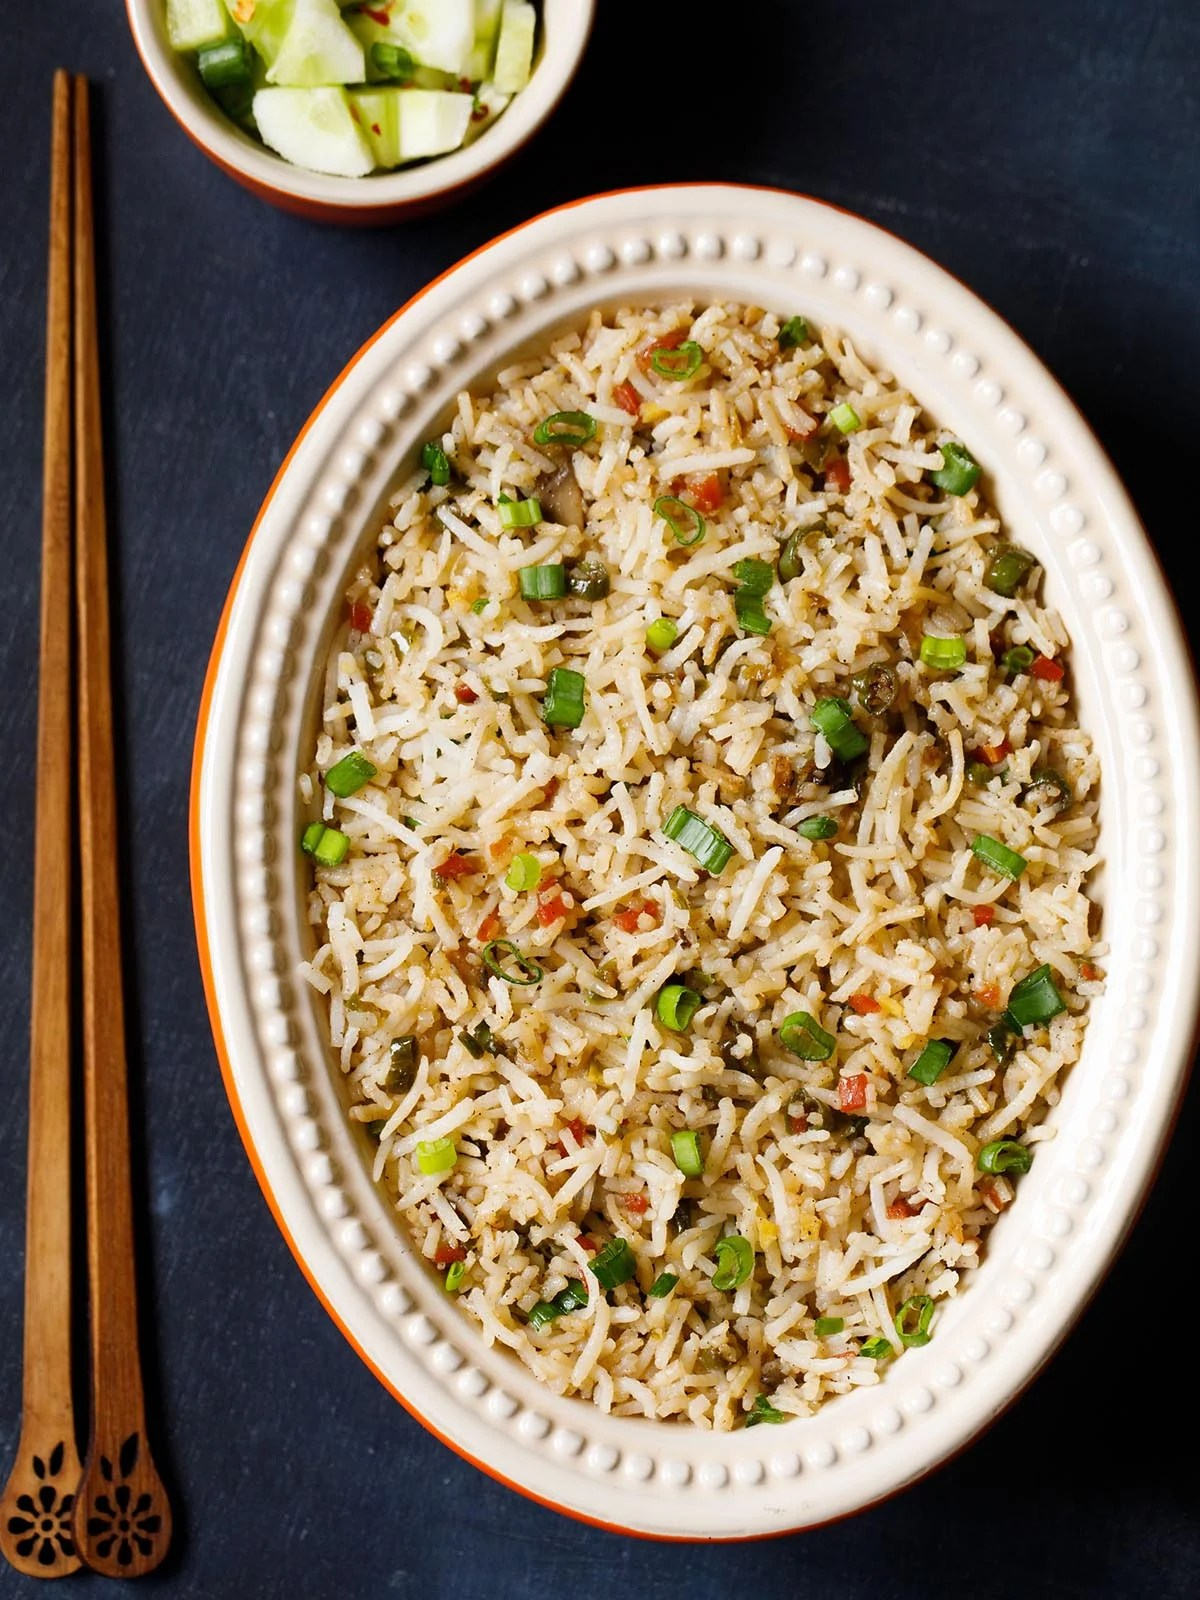 veg fried rice in an oval ceramic bowl with wooden chopsticks on a slate black board